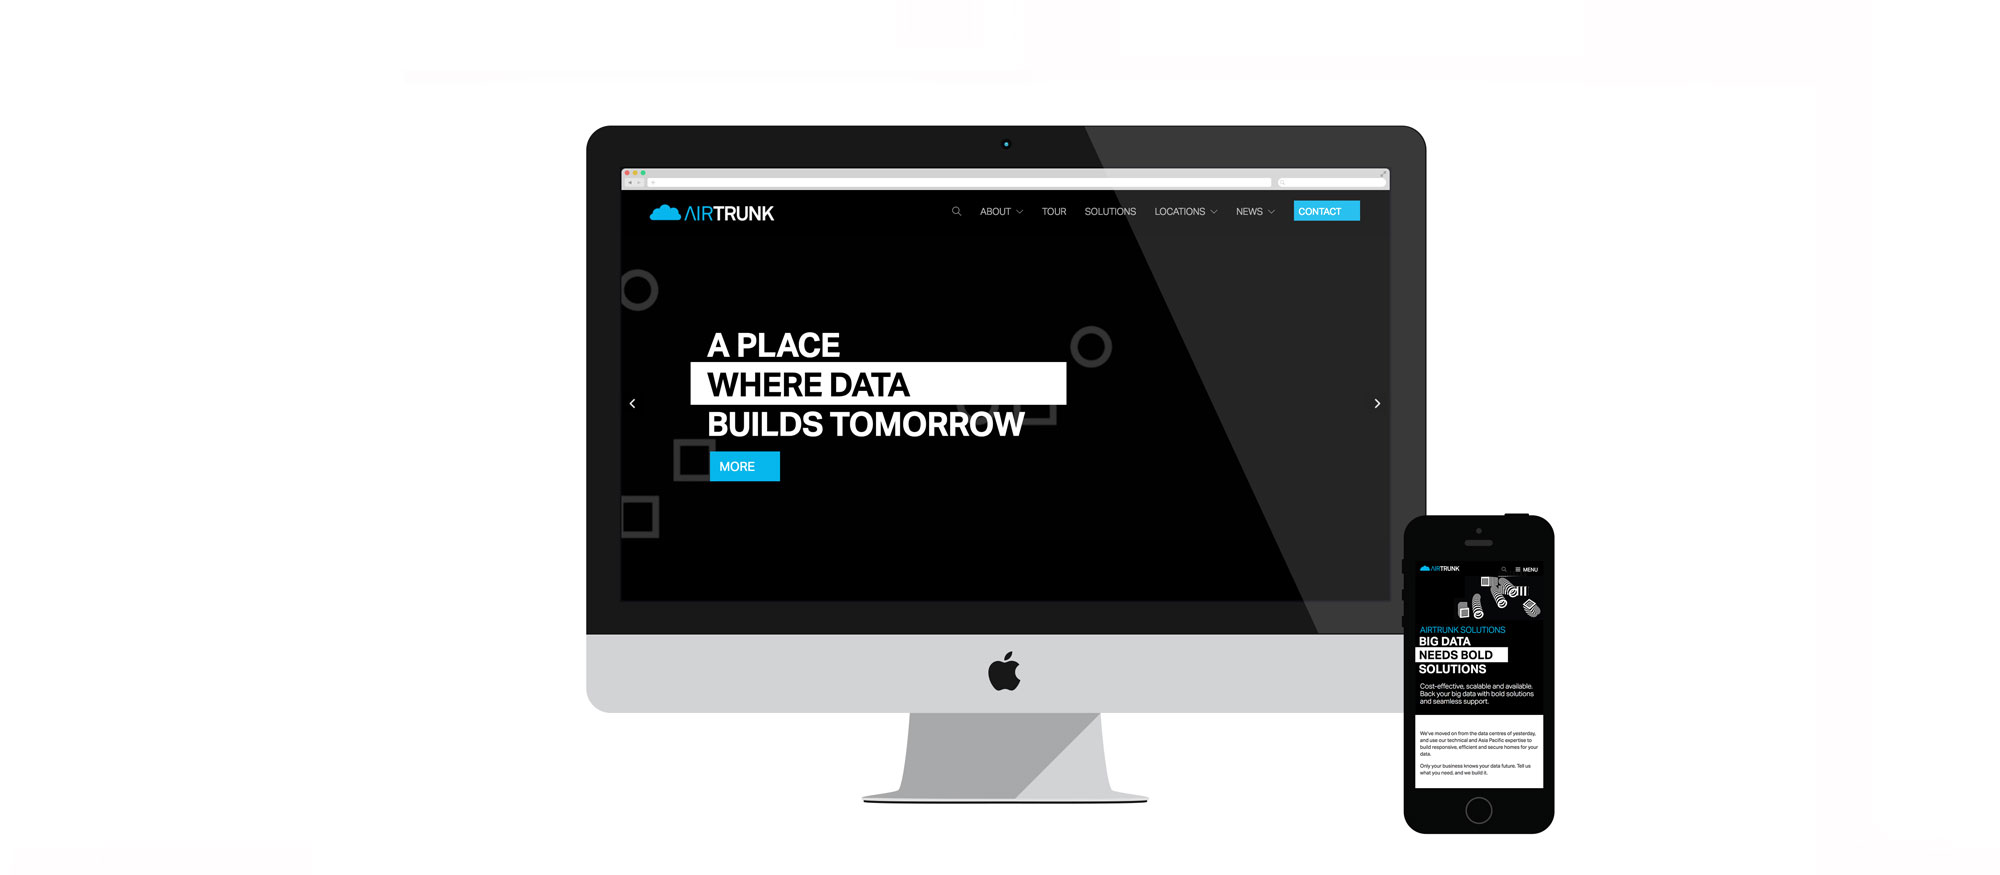 Desktop and mobile view of Airtrunk website design